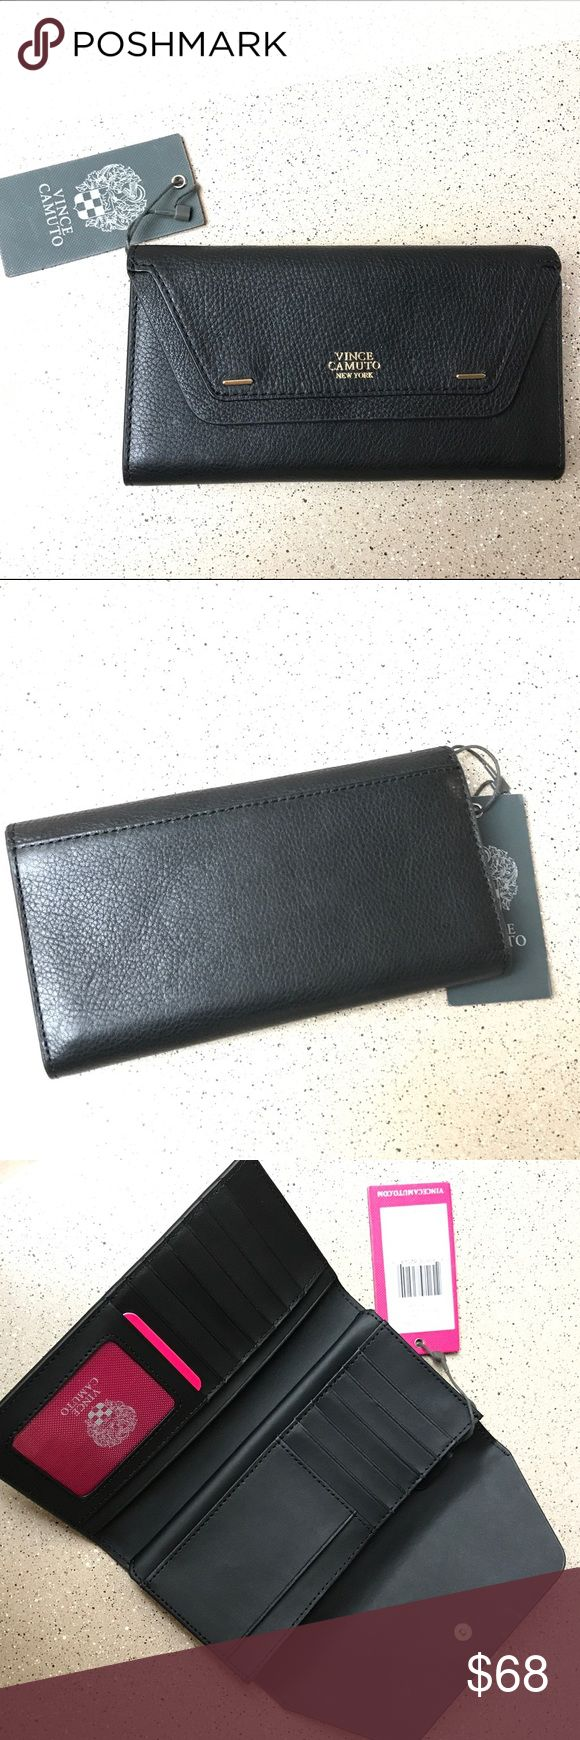 Vince Camuto Wallet Brand New Group Tessa Wallet  It has one pocket on the back and three separate one on the inside. No scratches, no box comes at shown in picture.  Open to reasonable offers Vince Camuto Bags Wallets